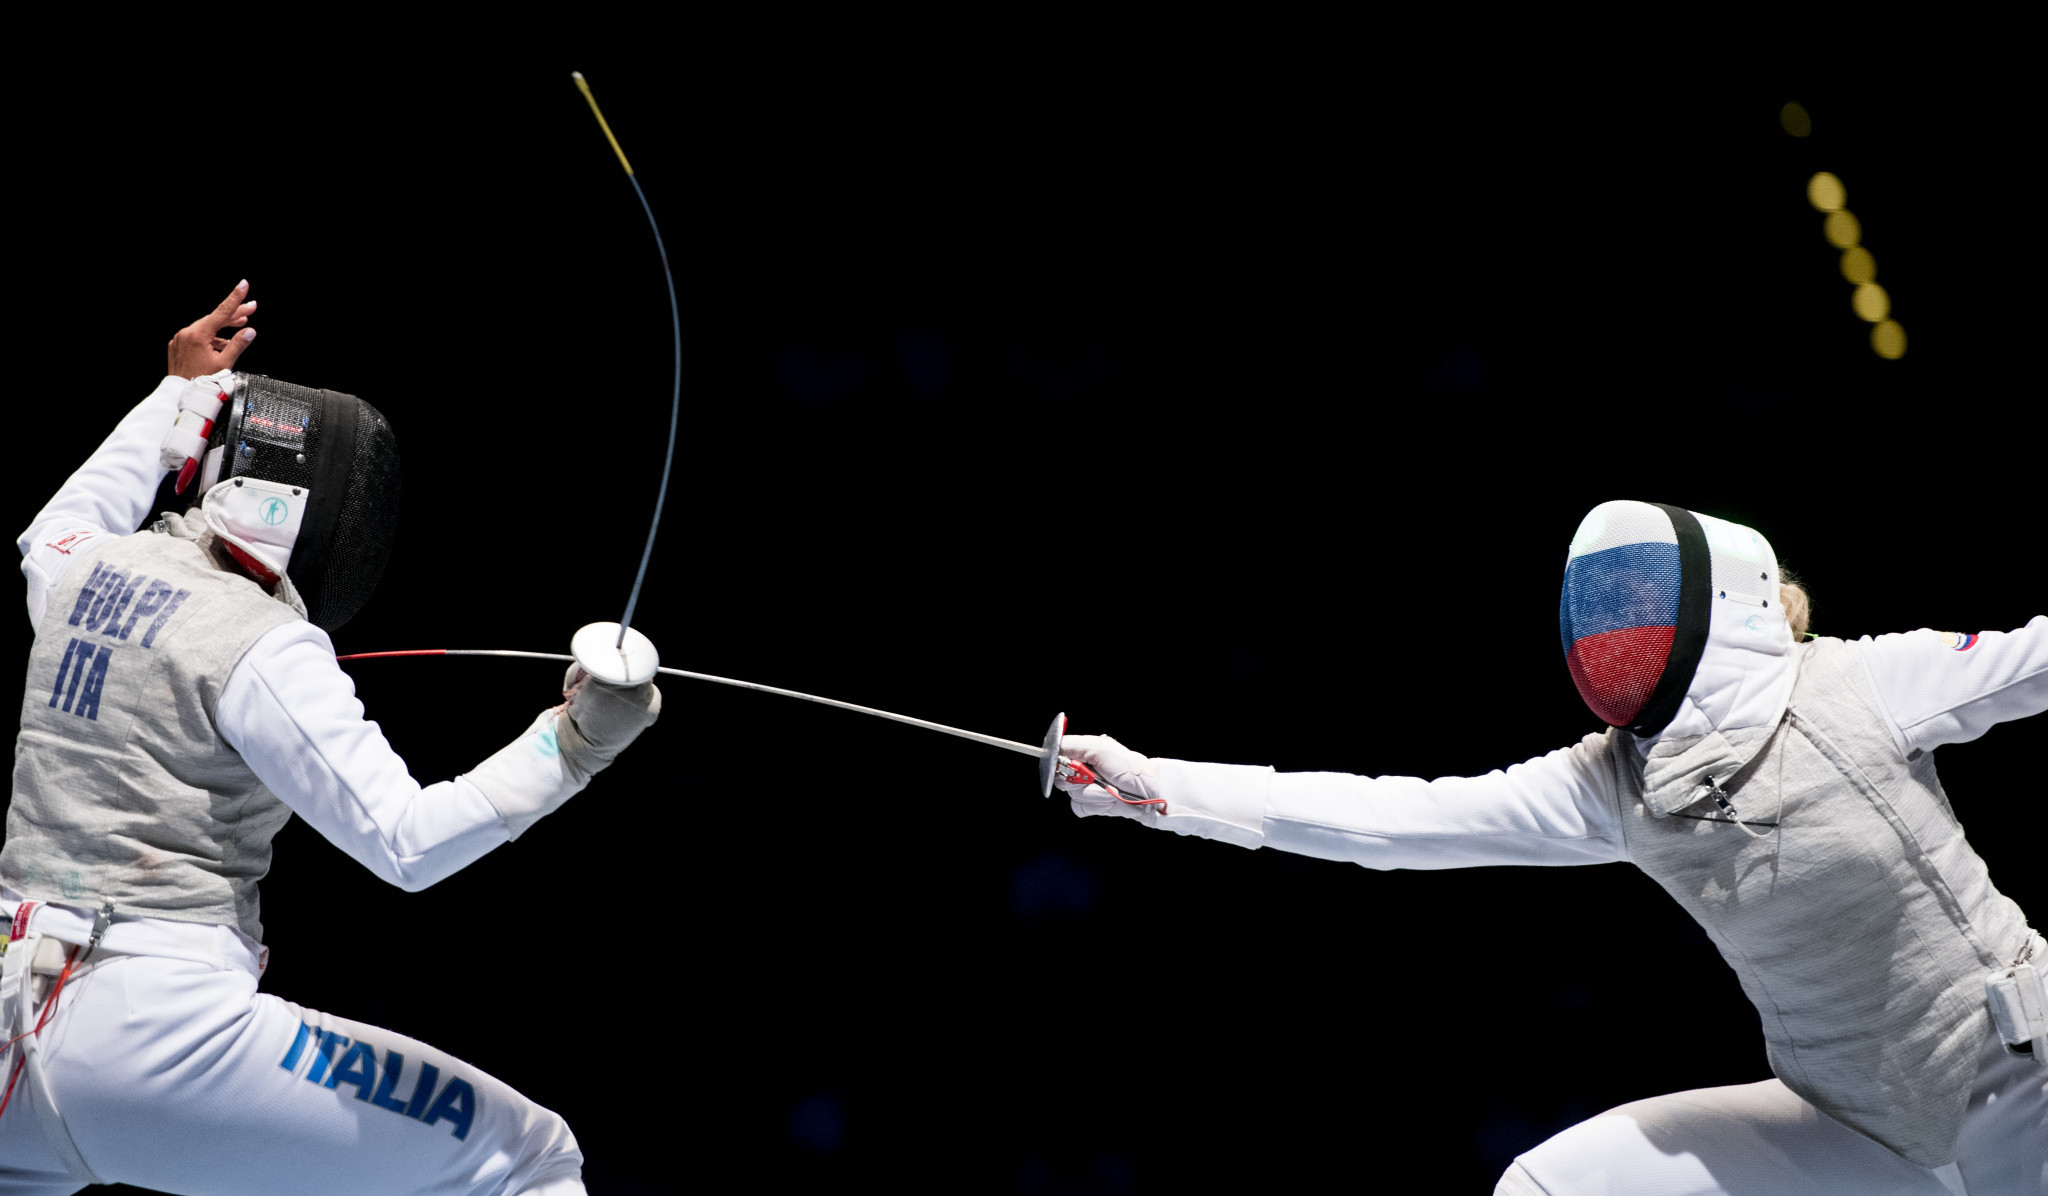 Inna Deriglazova, right, won the women's Foil World Cup event in Germany ©Getty Images